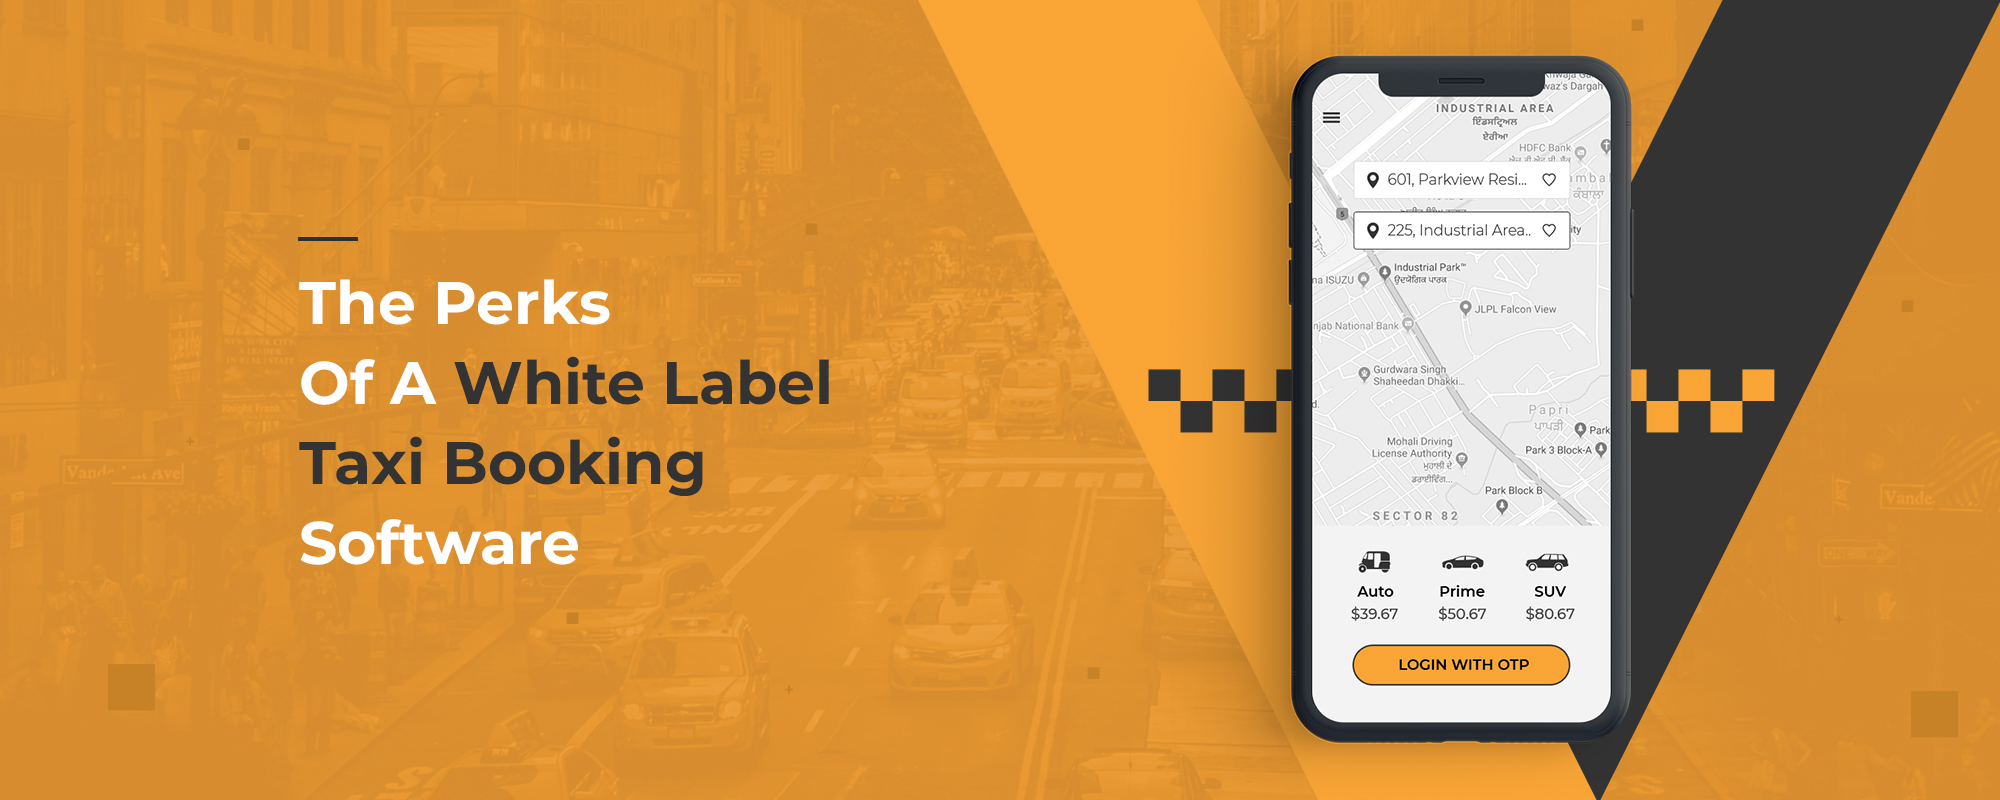 Why Launch a Taxi Booking Mobile App With White Label Taxi Booking Software?